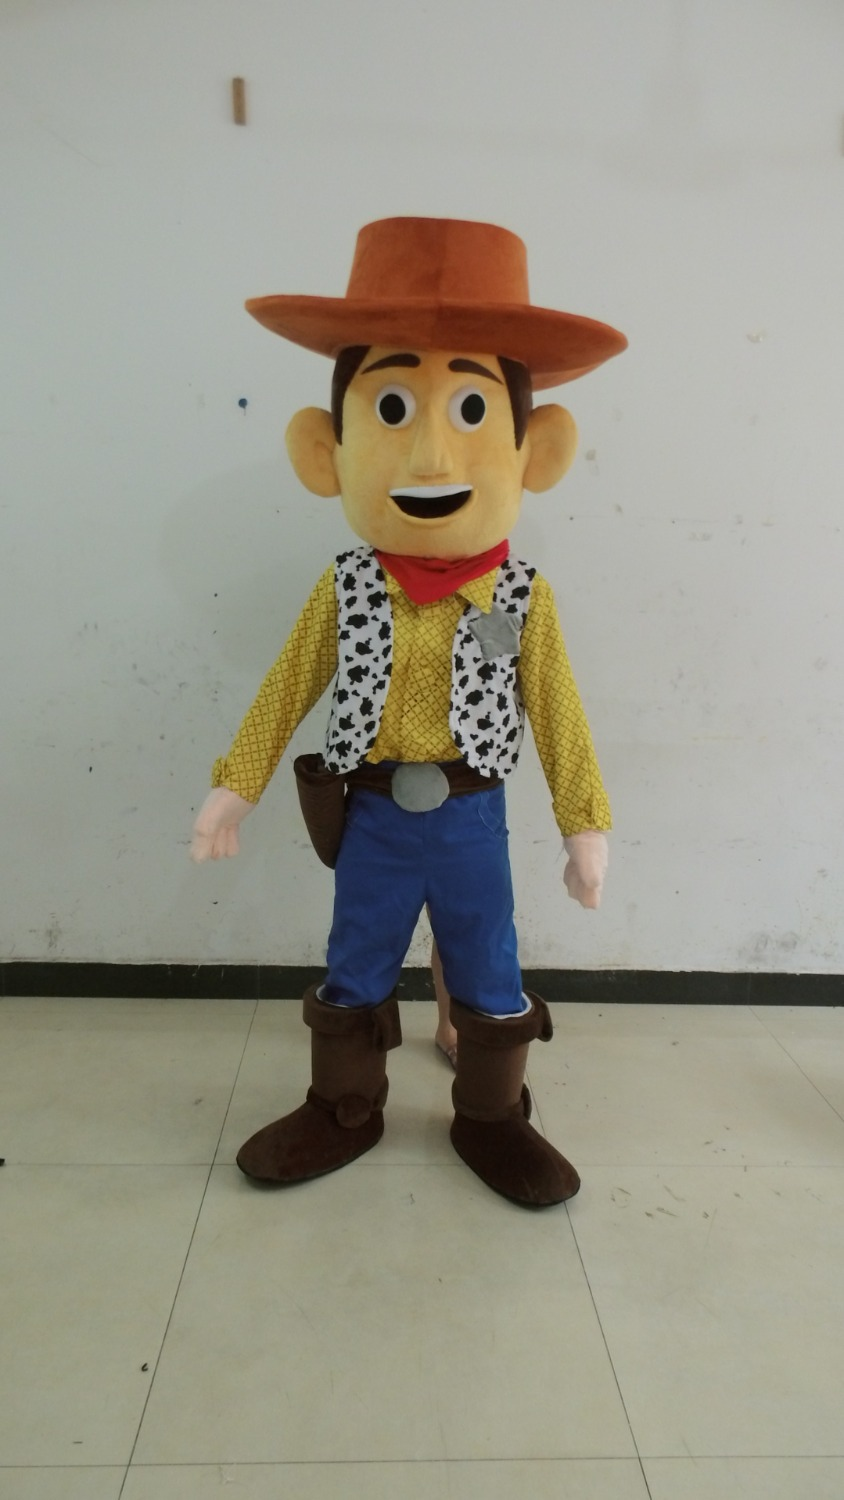 2014 new popular cowboy cartoon mascot costume/western cowboy woody mascot costume adult size can be customized